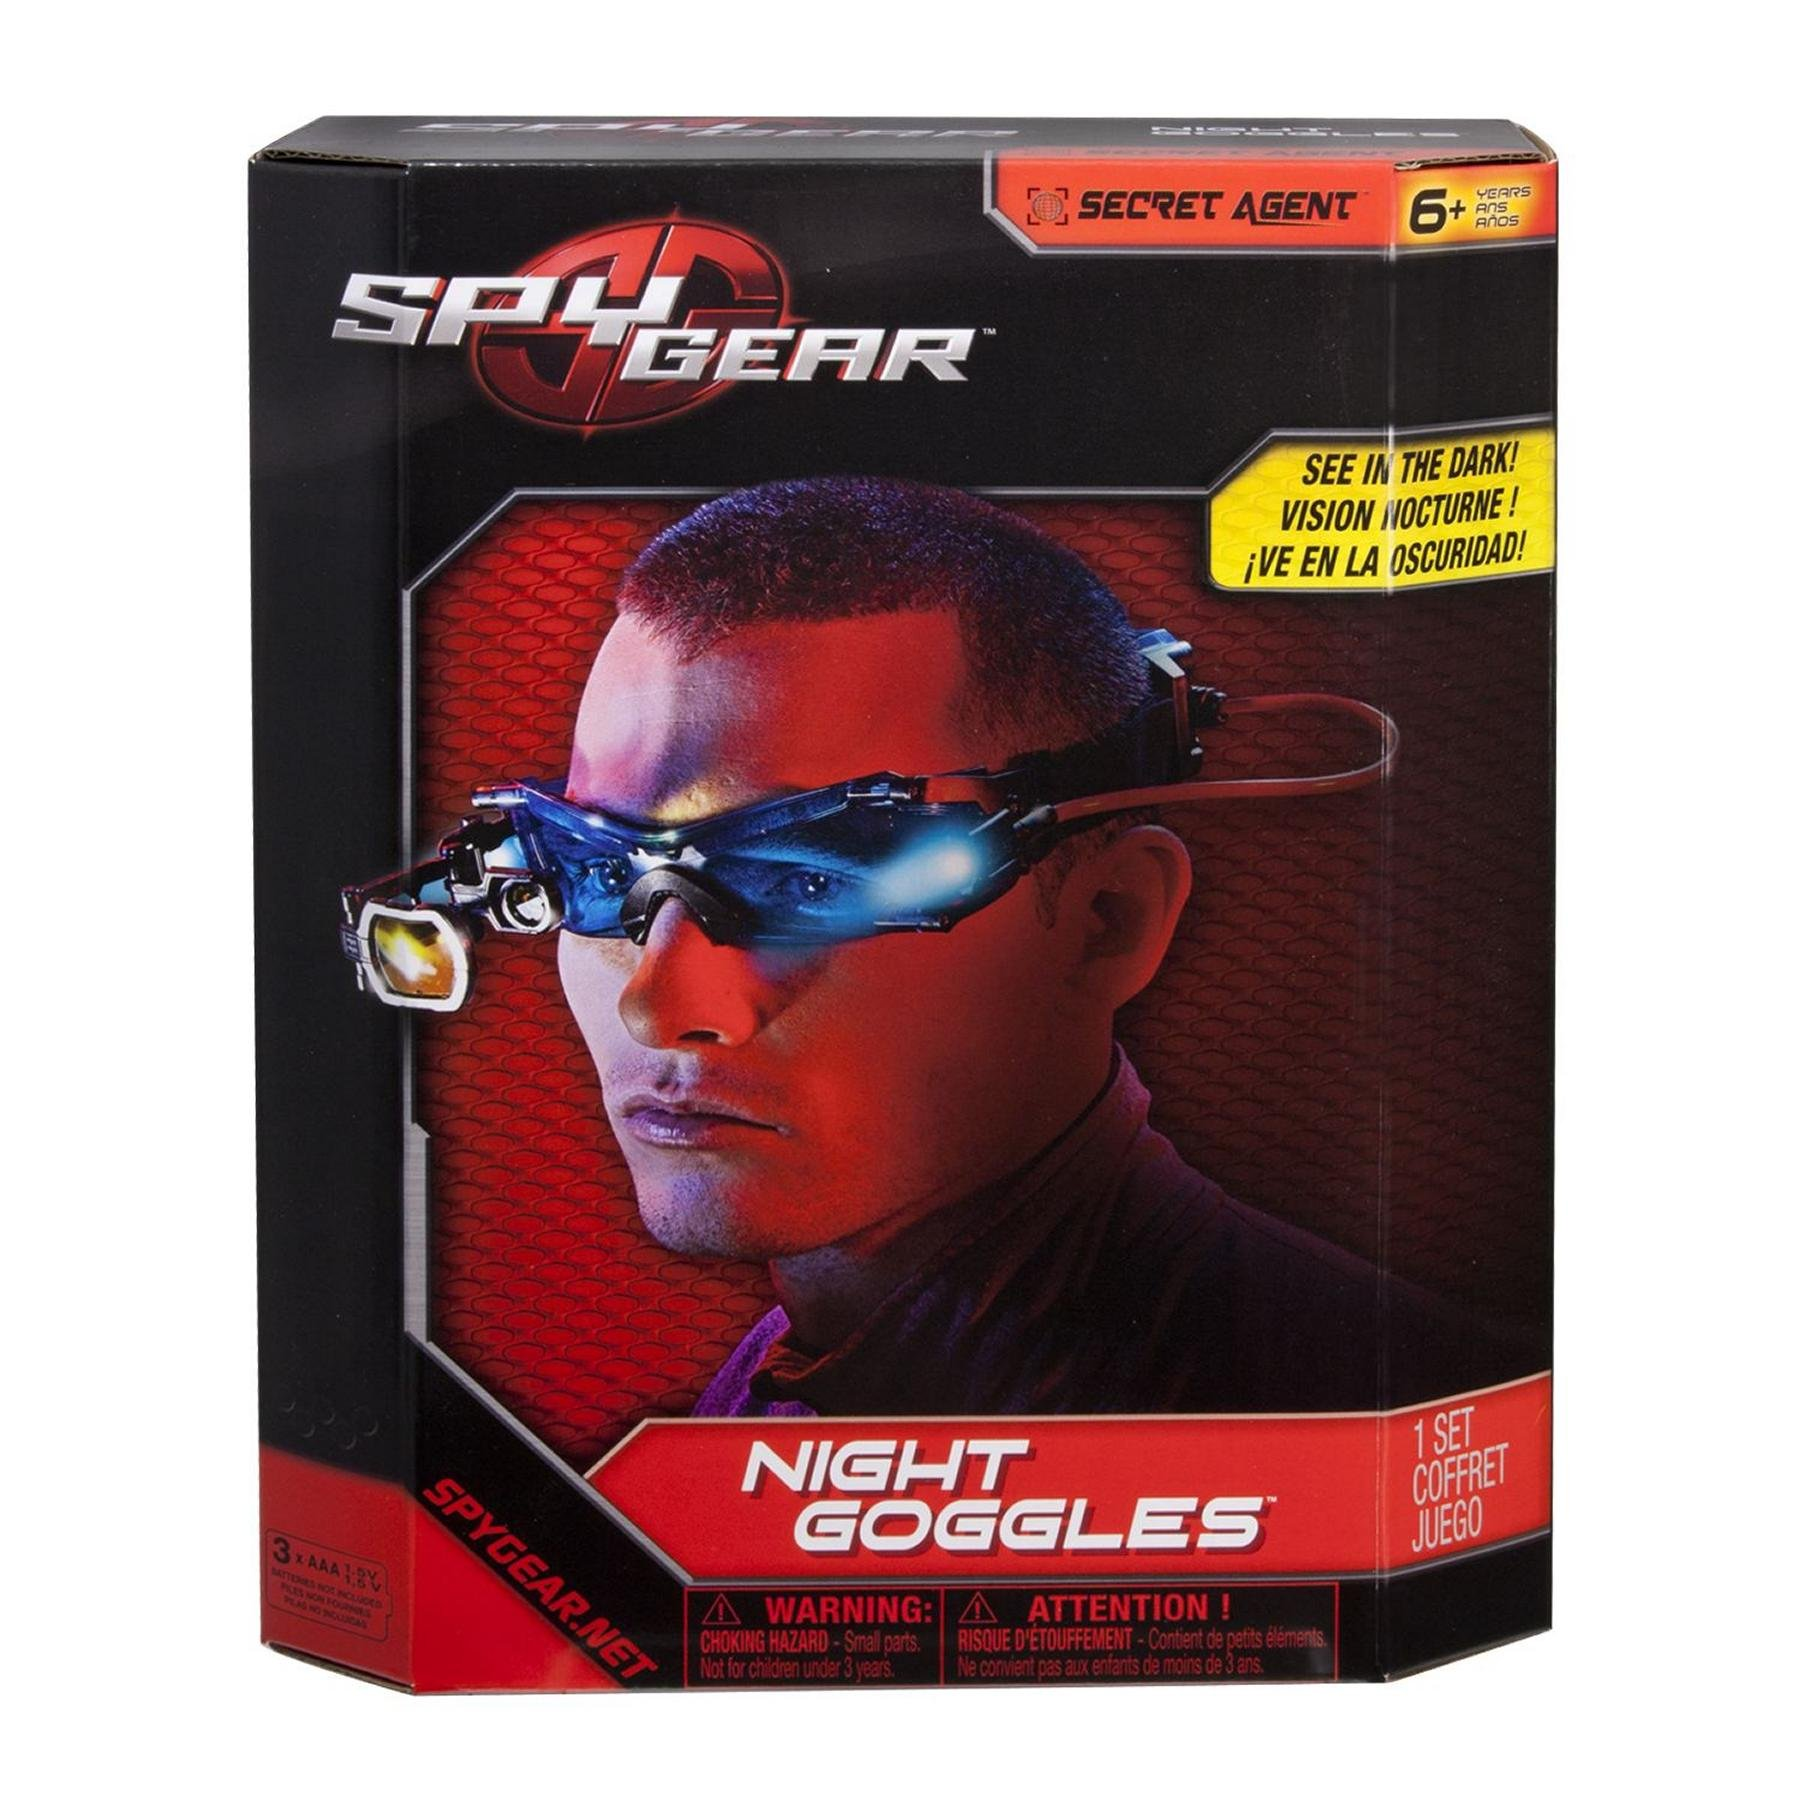 Spy Gear - Night Goggles by Spin Master (Image #2)